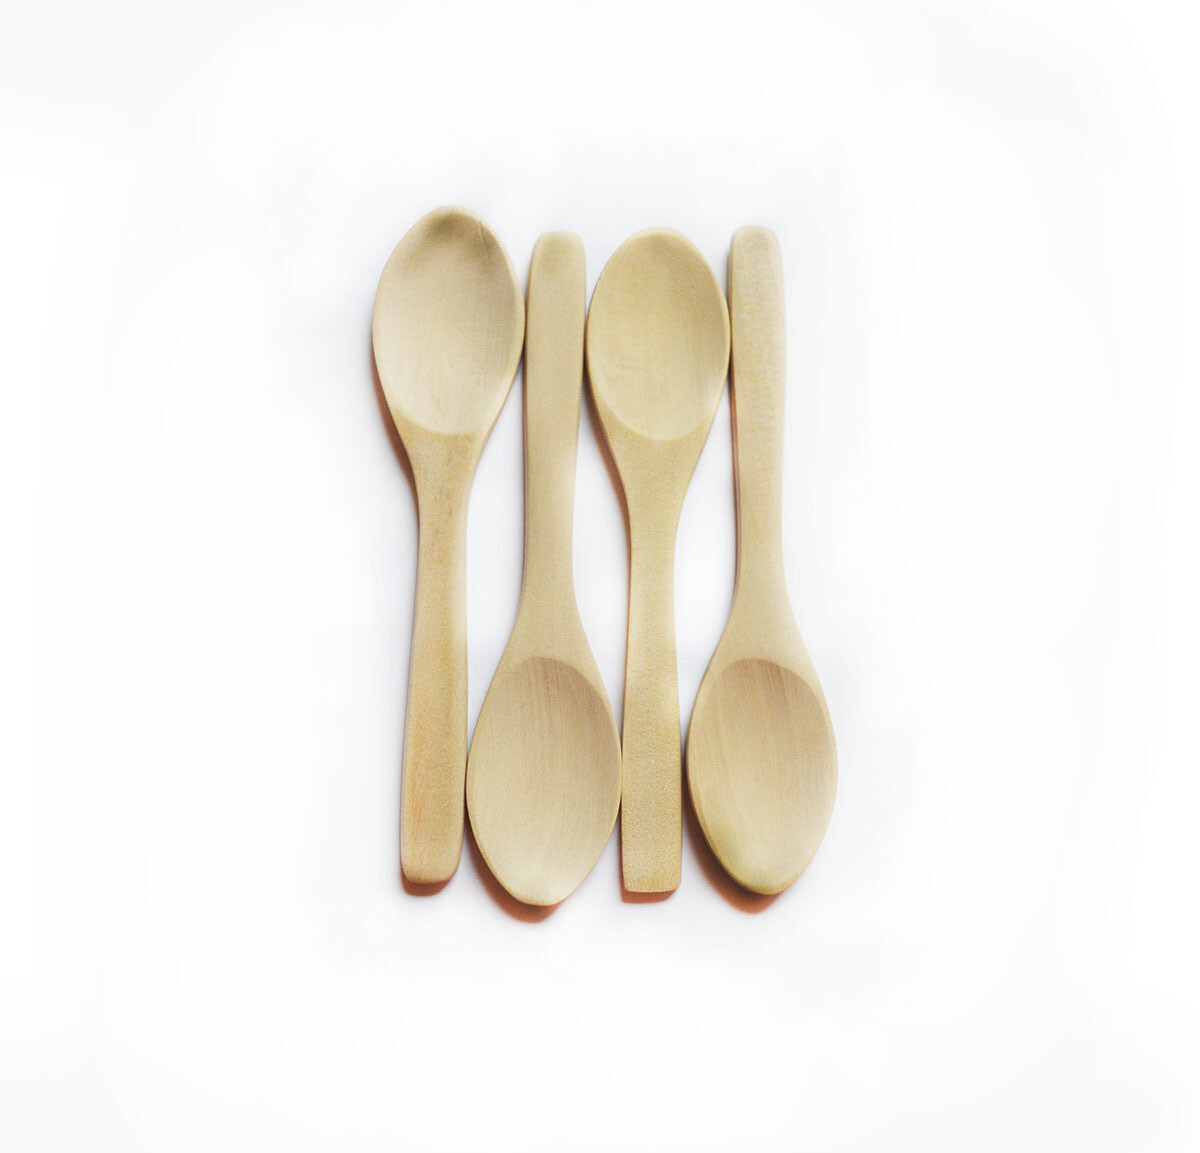 Simply Good™ Set of 4 Wood Baby Spoons - Plastic Free Feeding